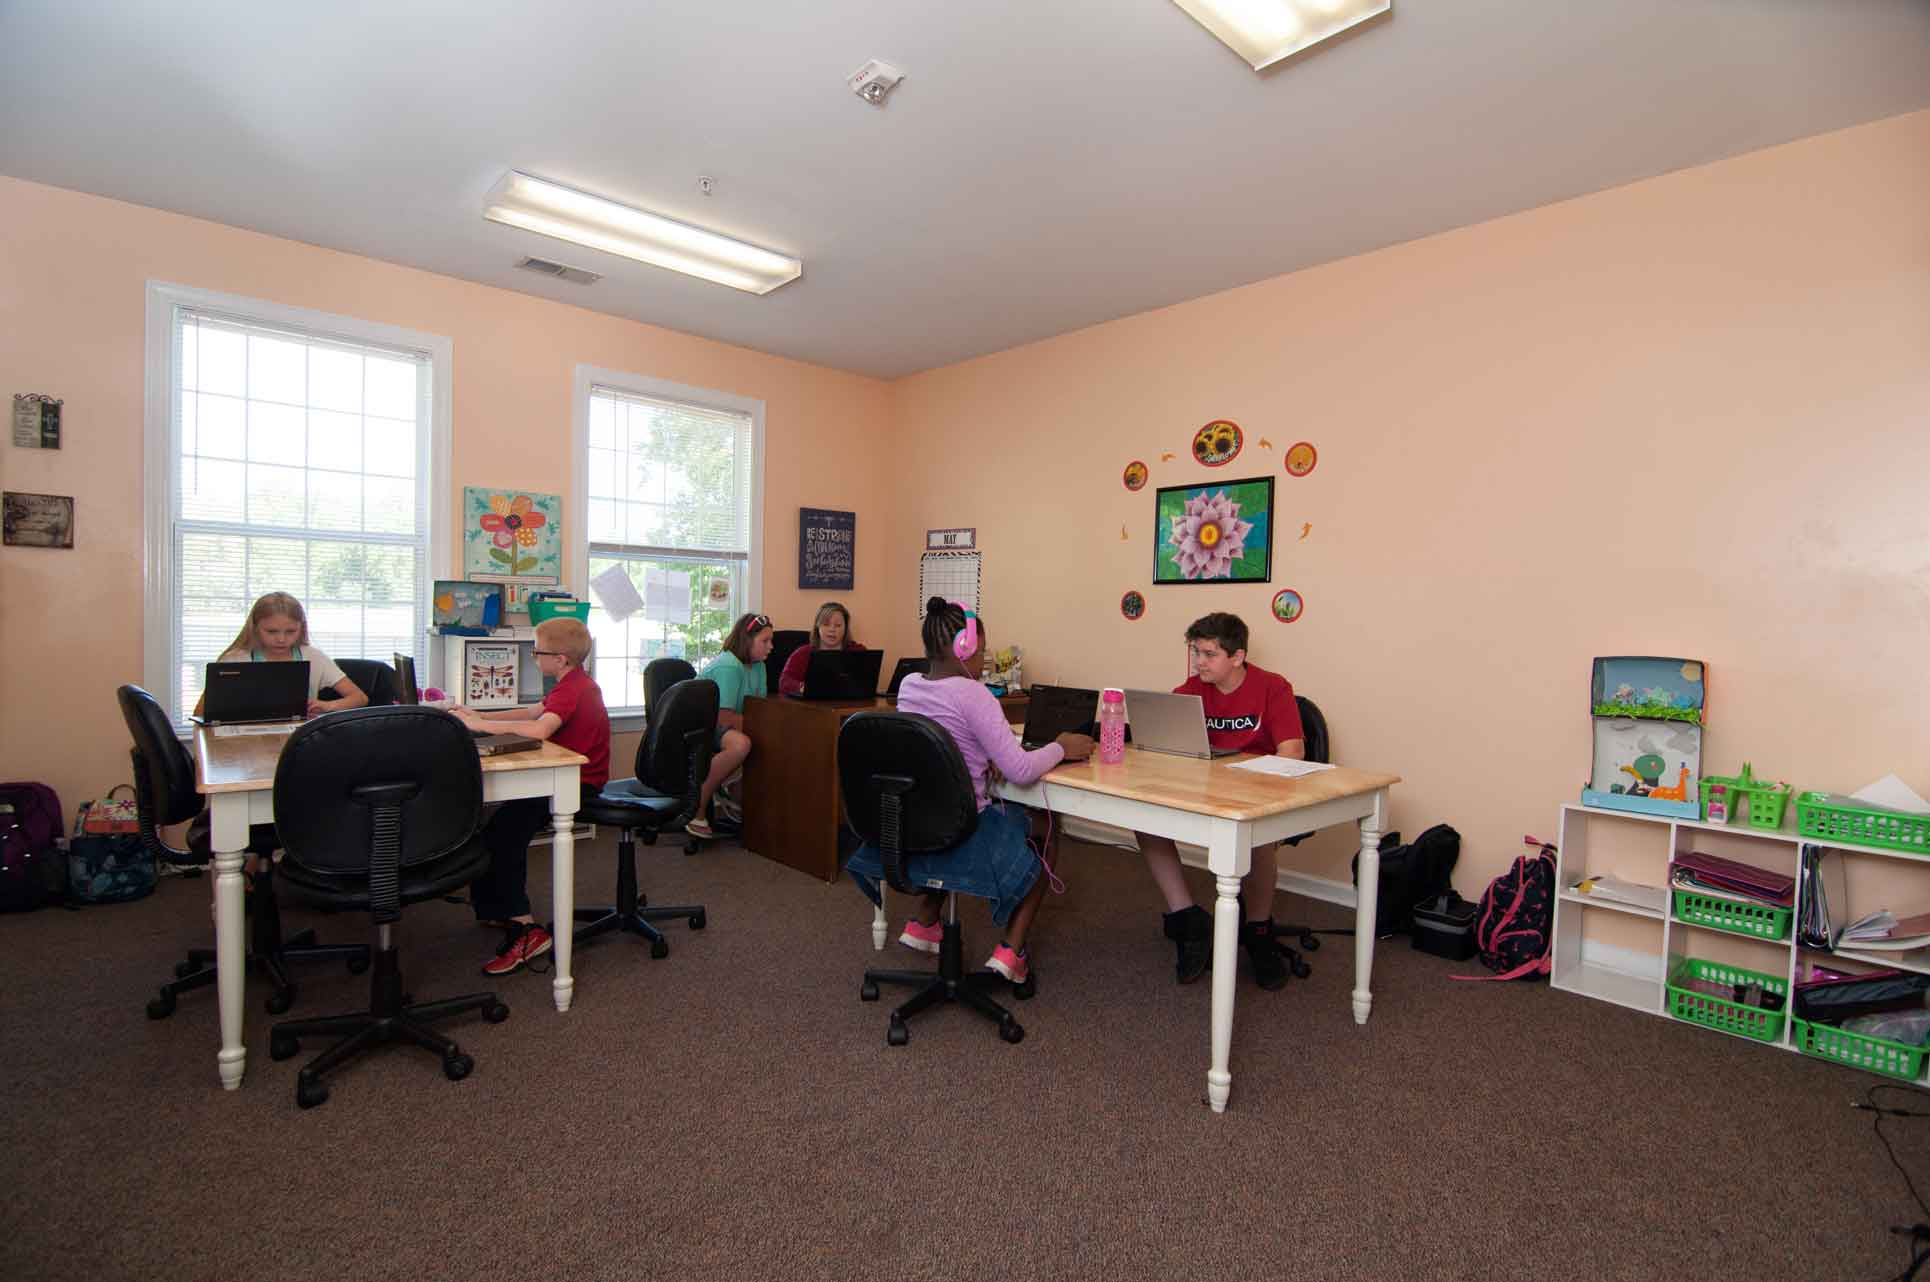 Private-Christian-Elementary-School-Students-Working-on-Computers-with-Teacher